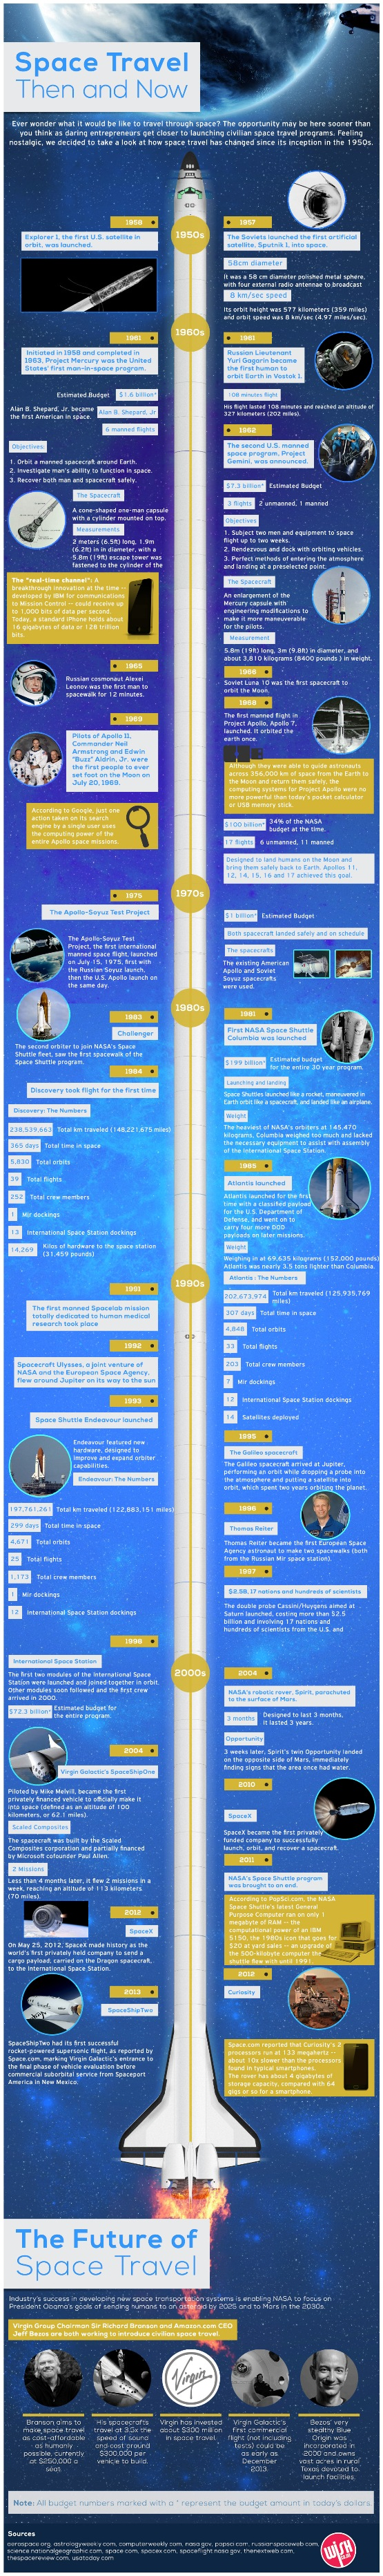 Space Travel in Time-Infographic